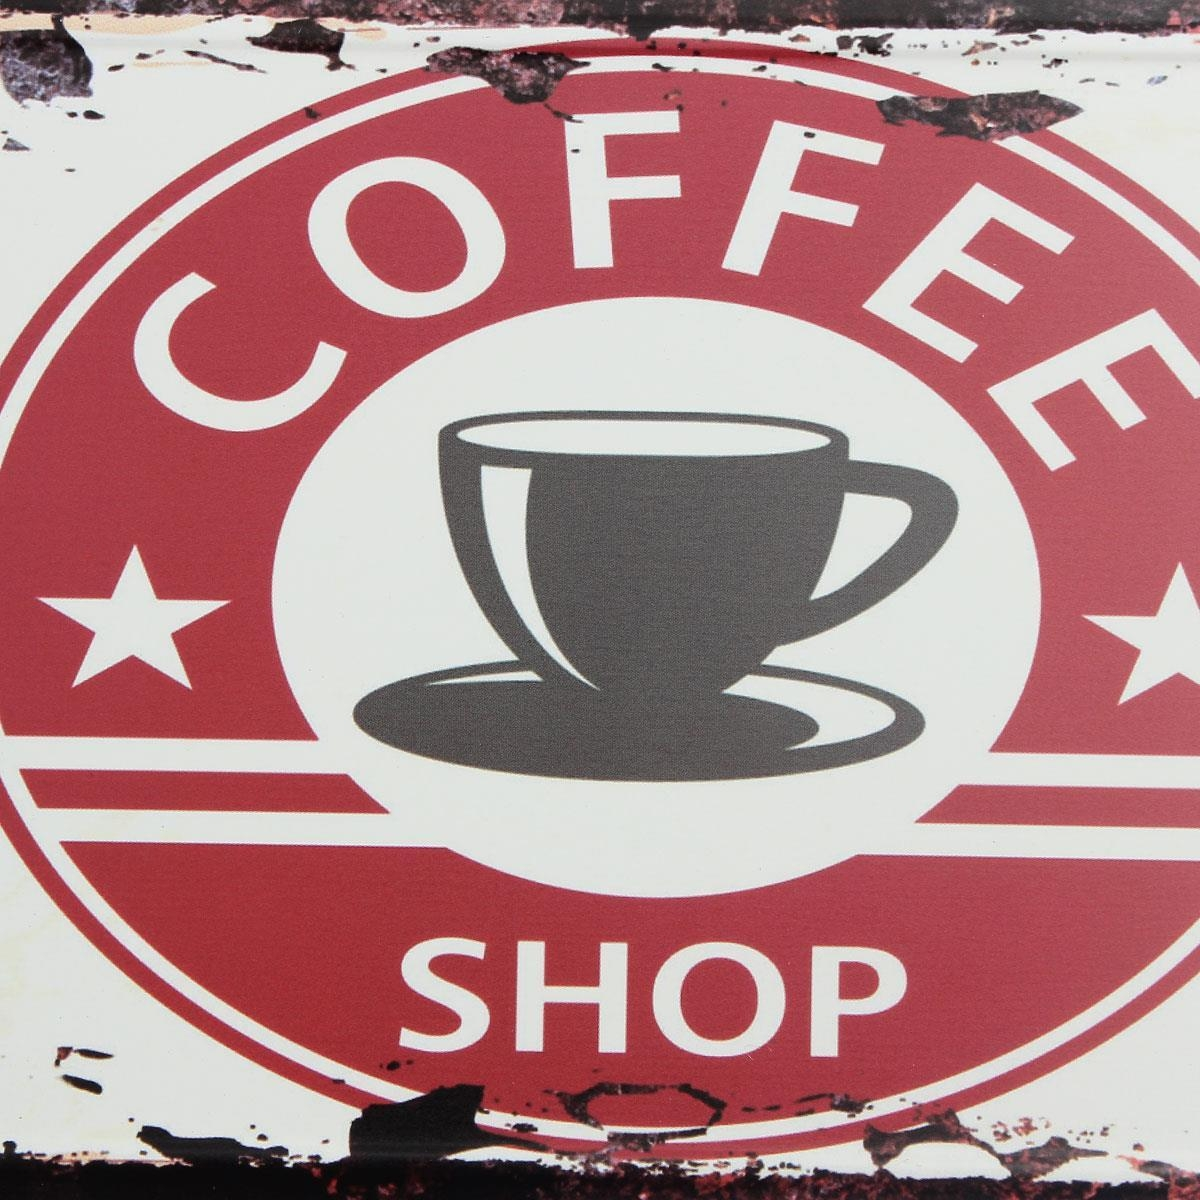 Coffee Theme Vintage Metal Sign The Fresh Brewed Coffee Wall Inside Coffee Theme Metal Wall Art (View 4 of 20)